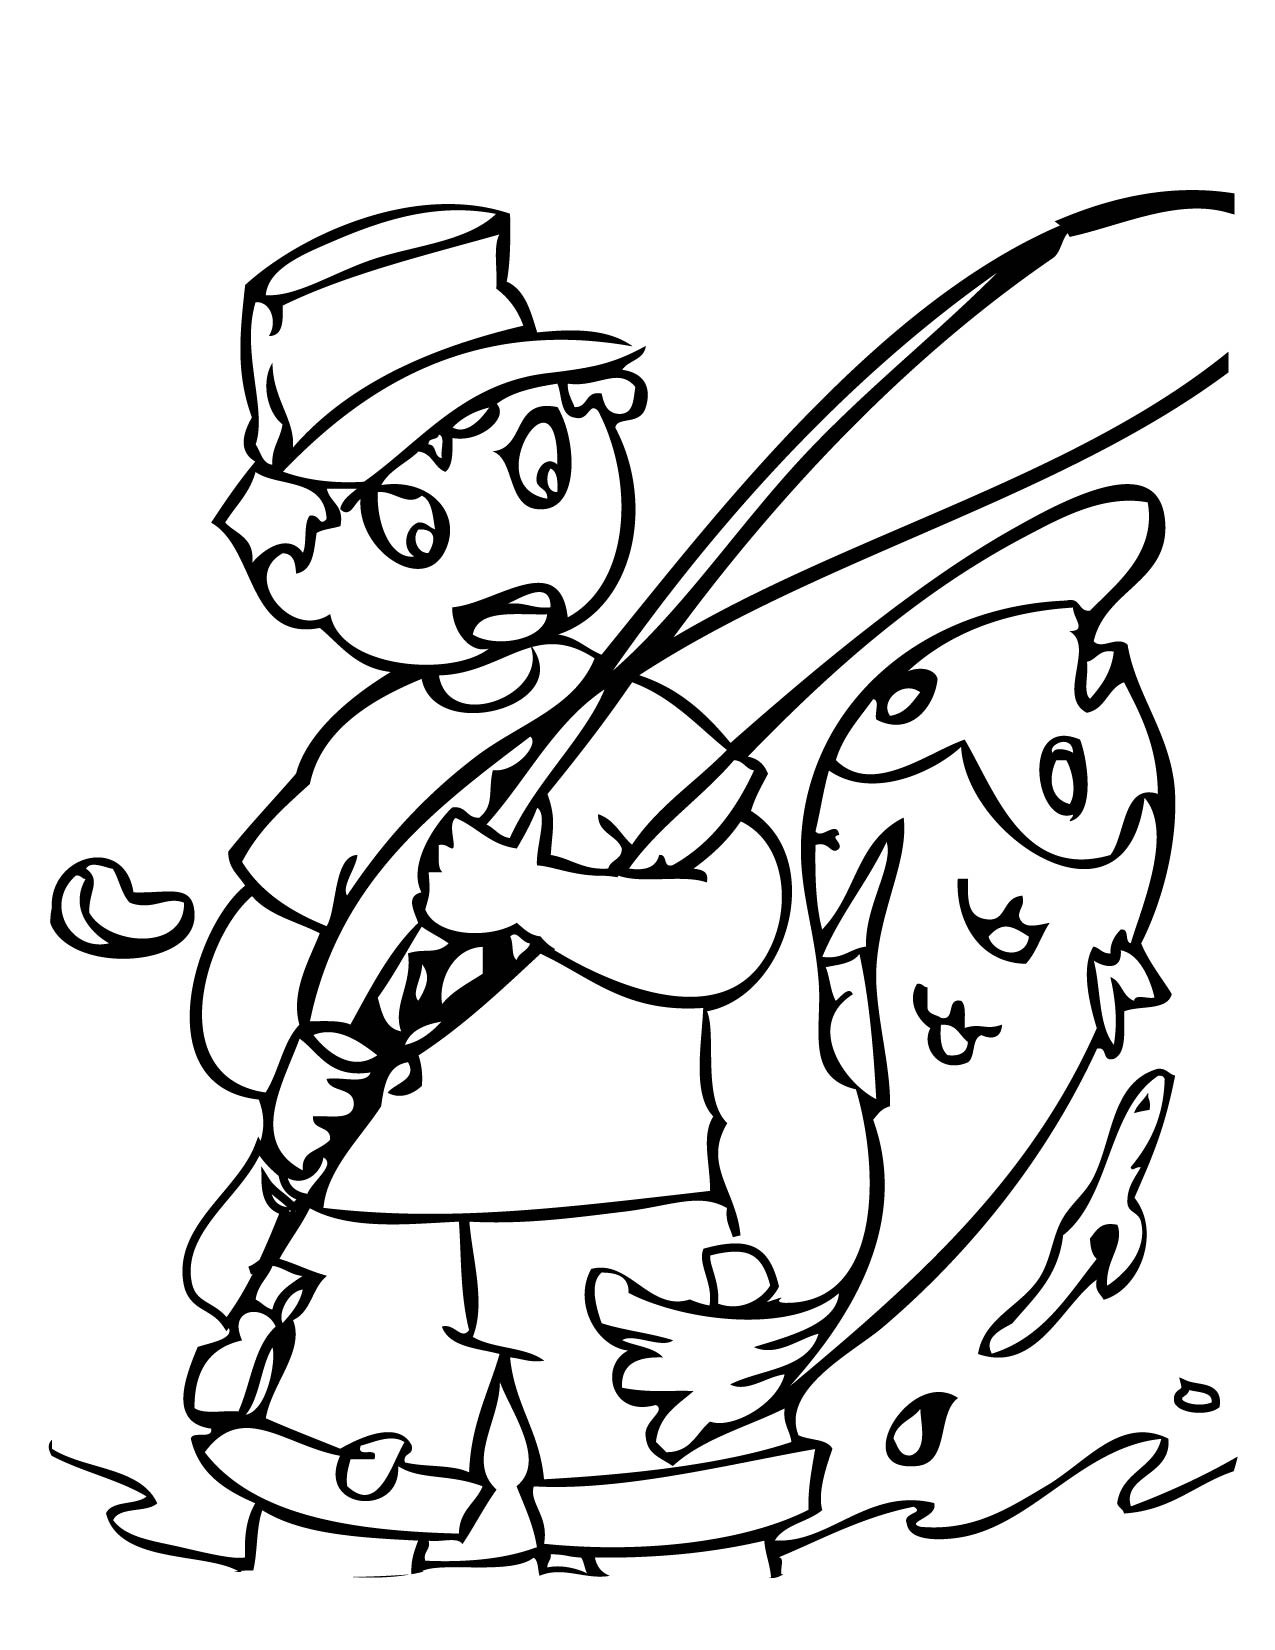 Best ideas about Fishing Printable Coloring Pages . Save or Pin Printable Fishing Now.